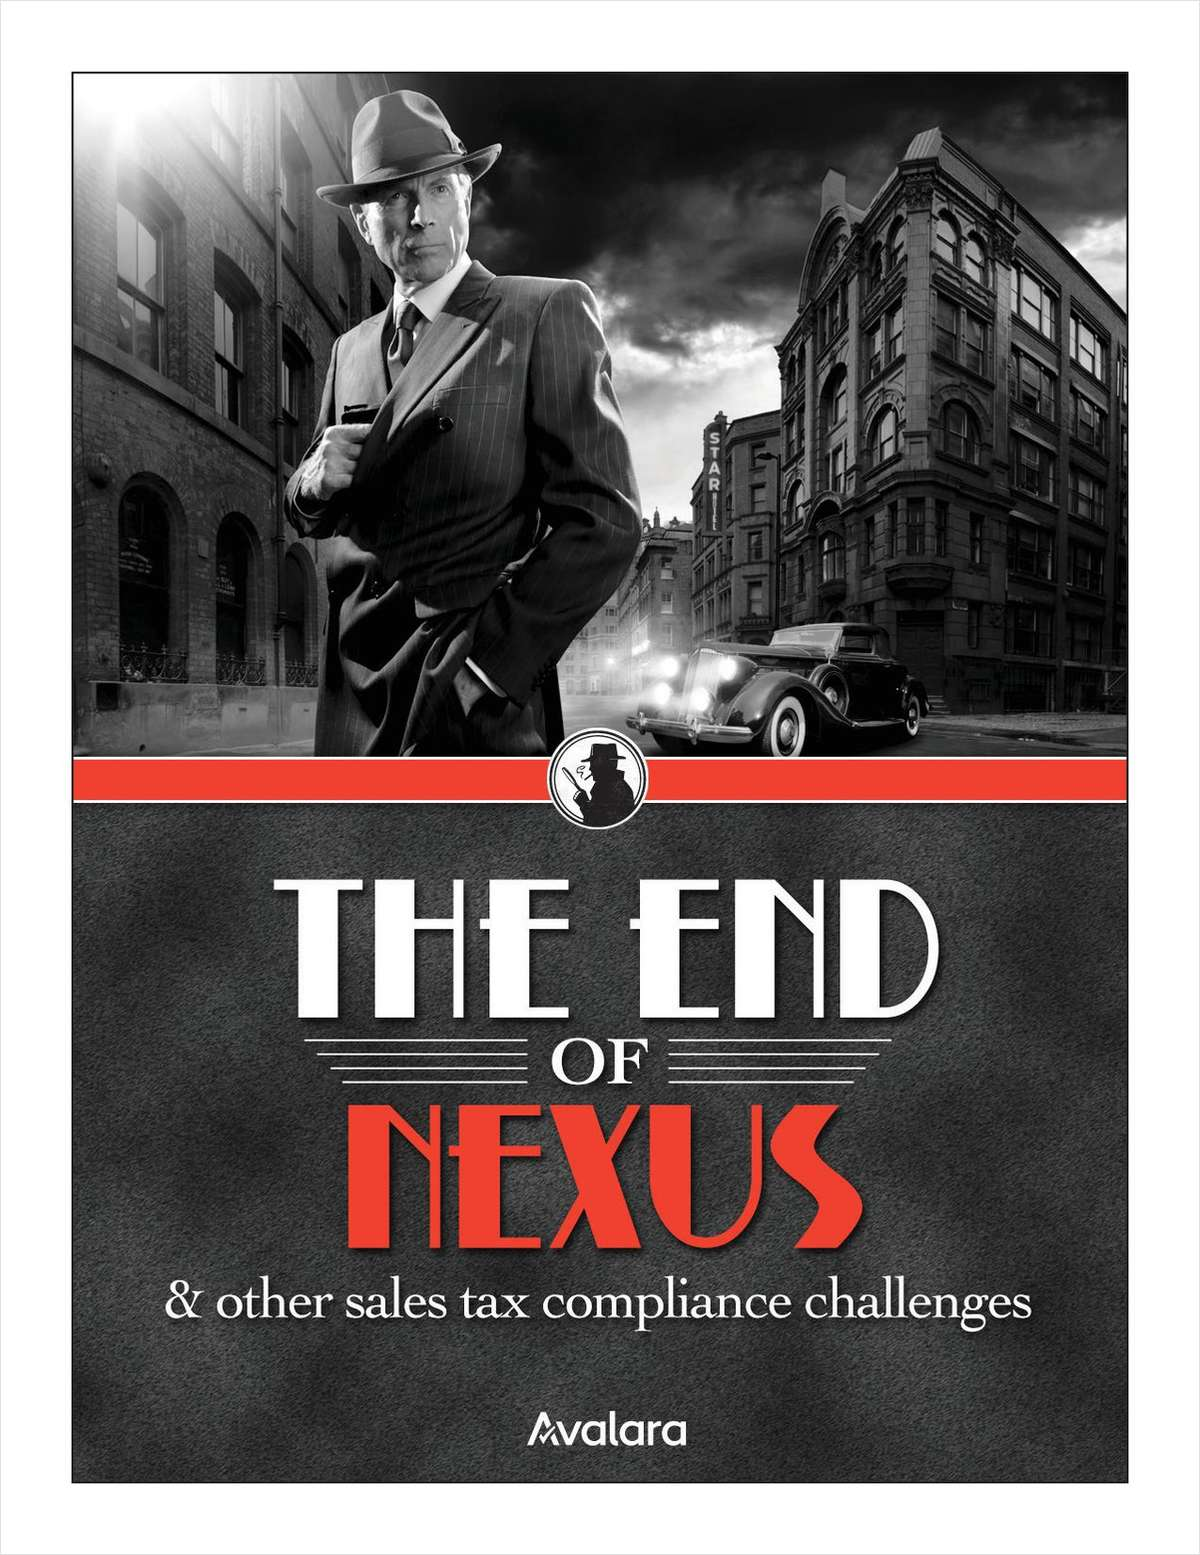 The End of Nexus & other sales tax compliance challenges